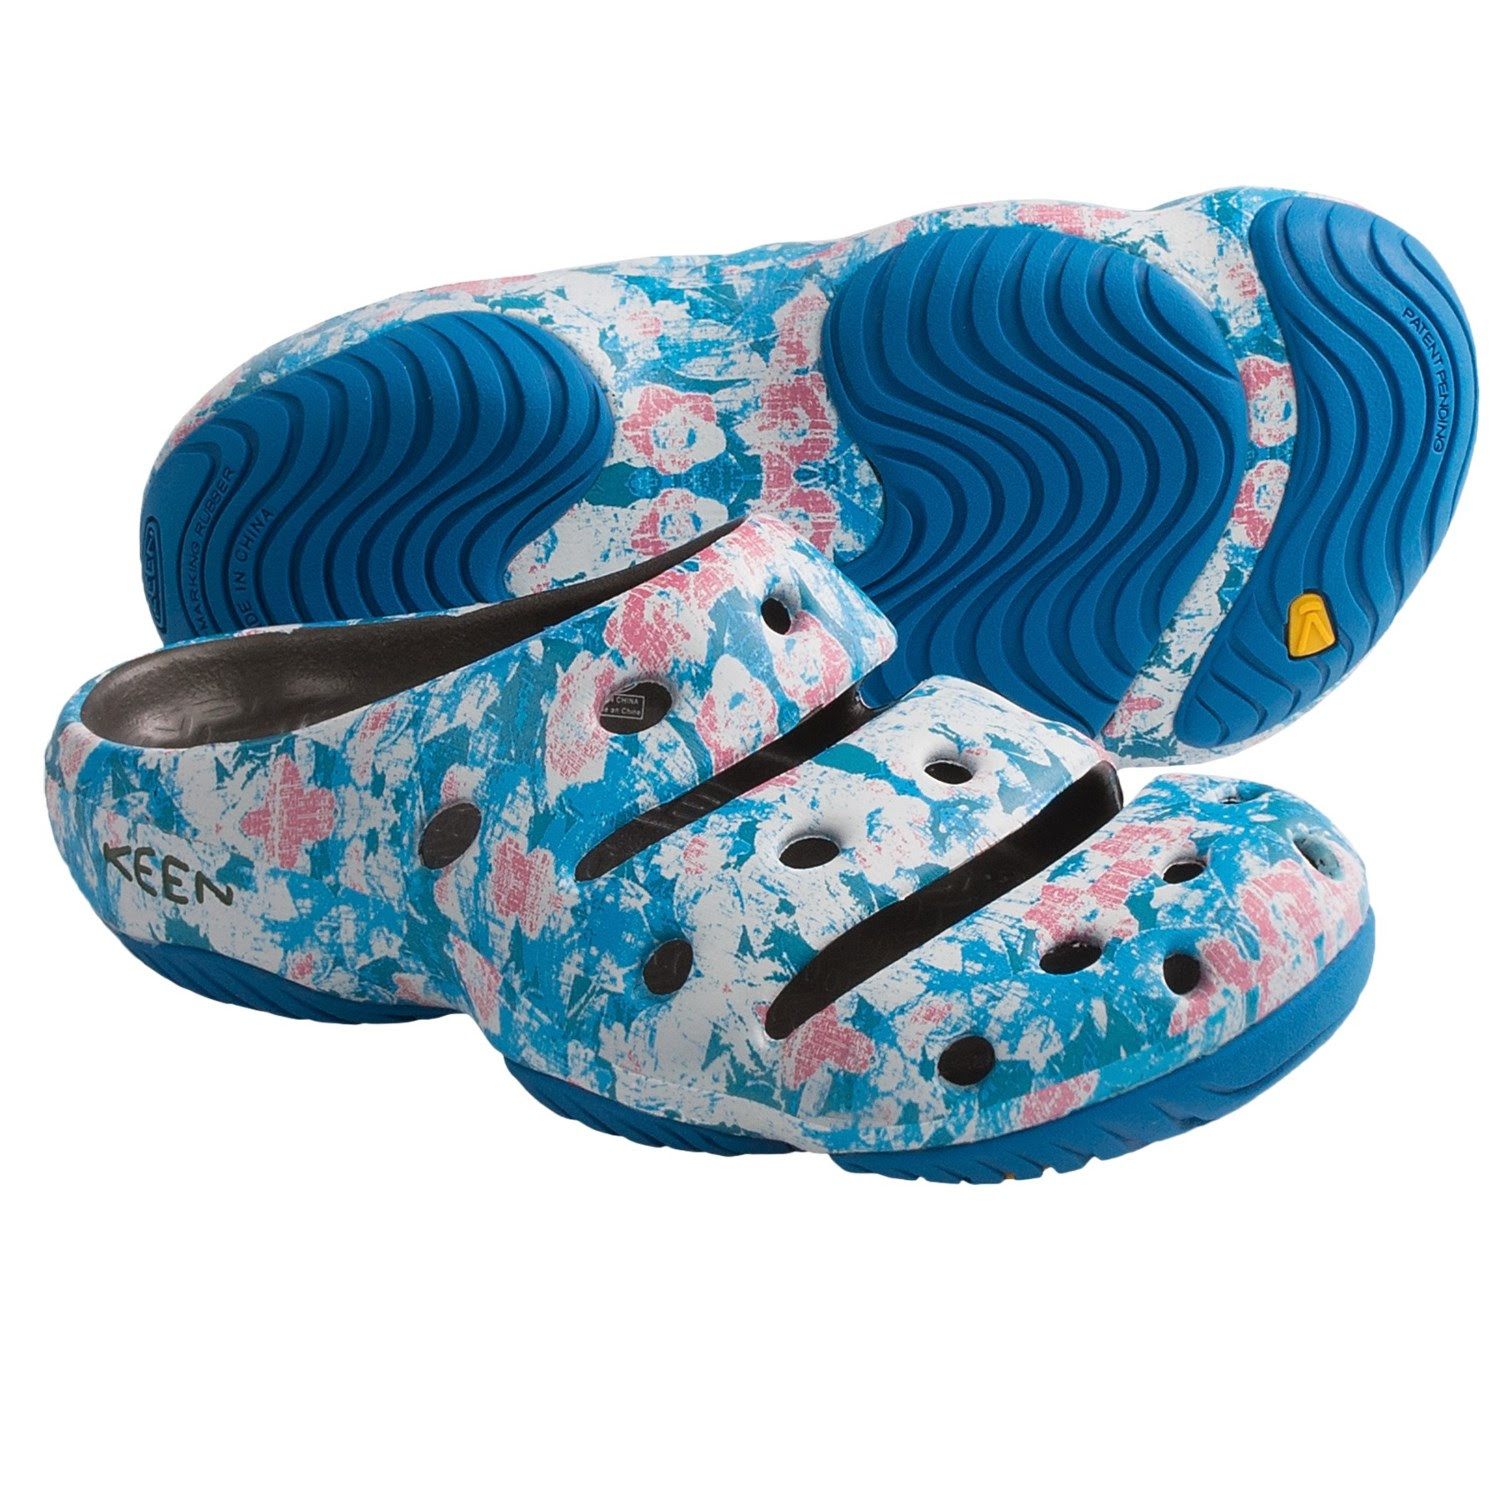 Keen Shoes Yogui